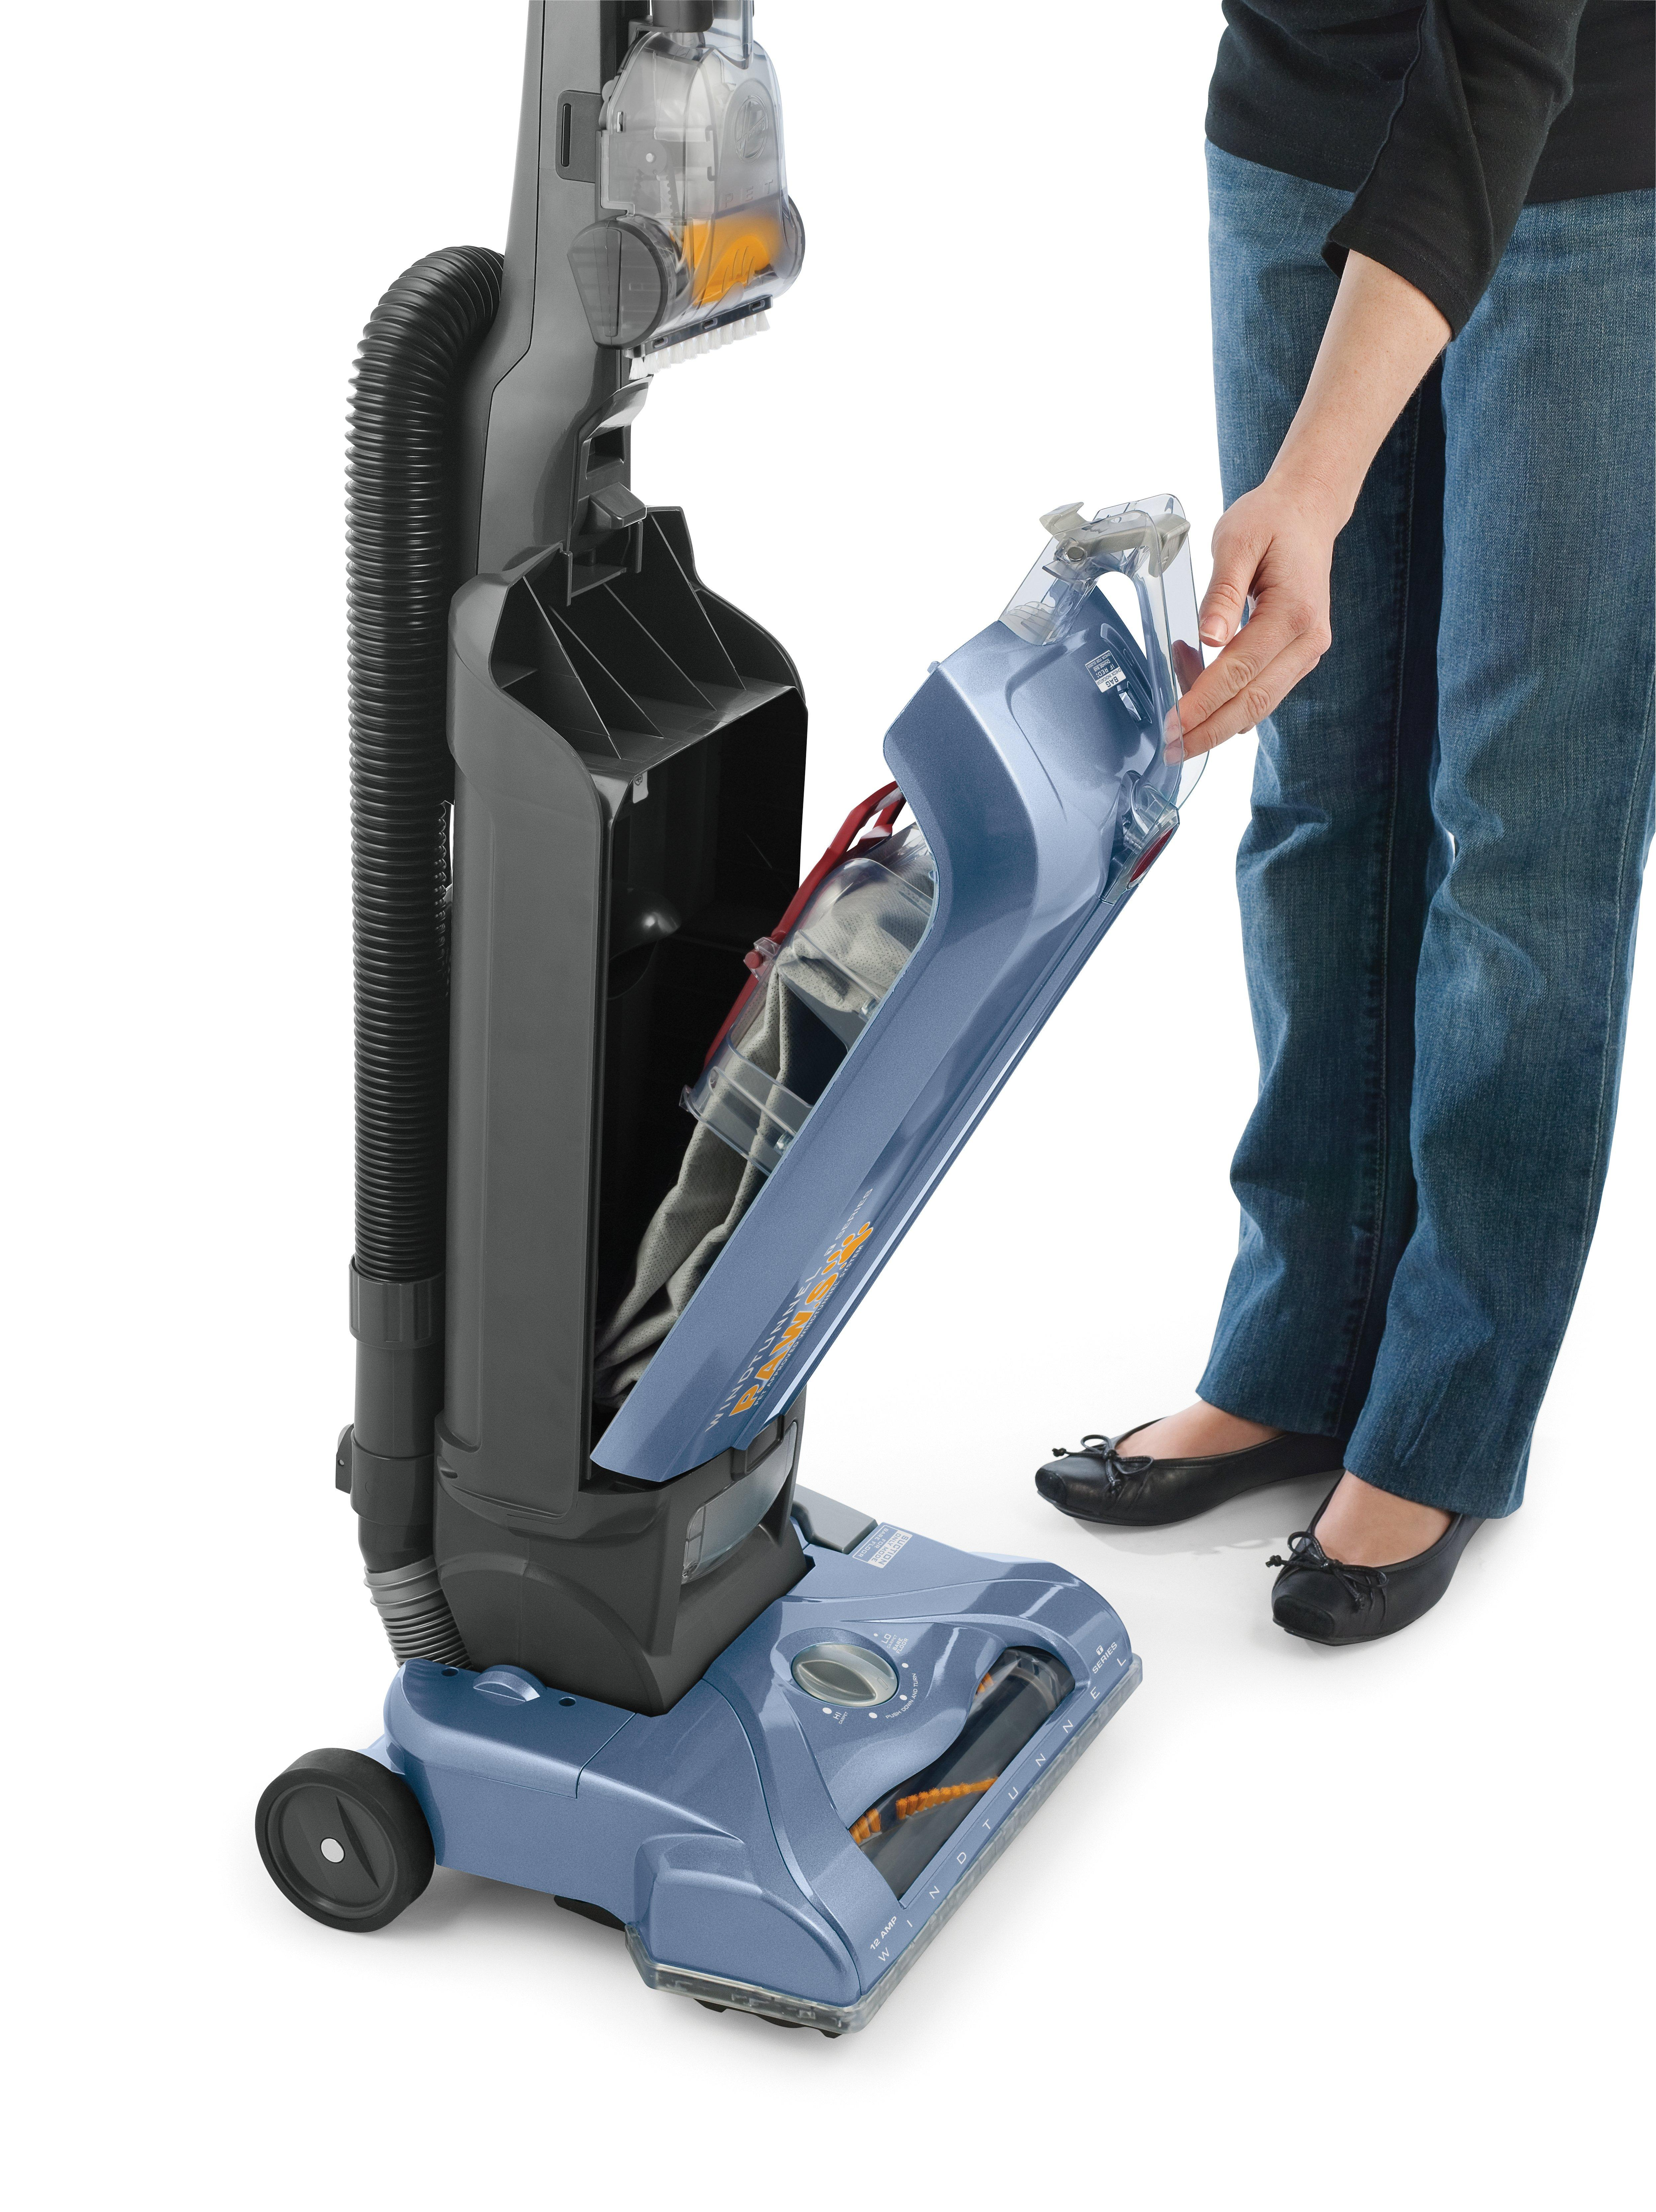 Hoover Windtunnel T Series Pet Bagged Upright Vacuum